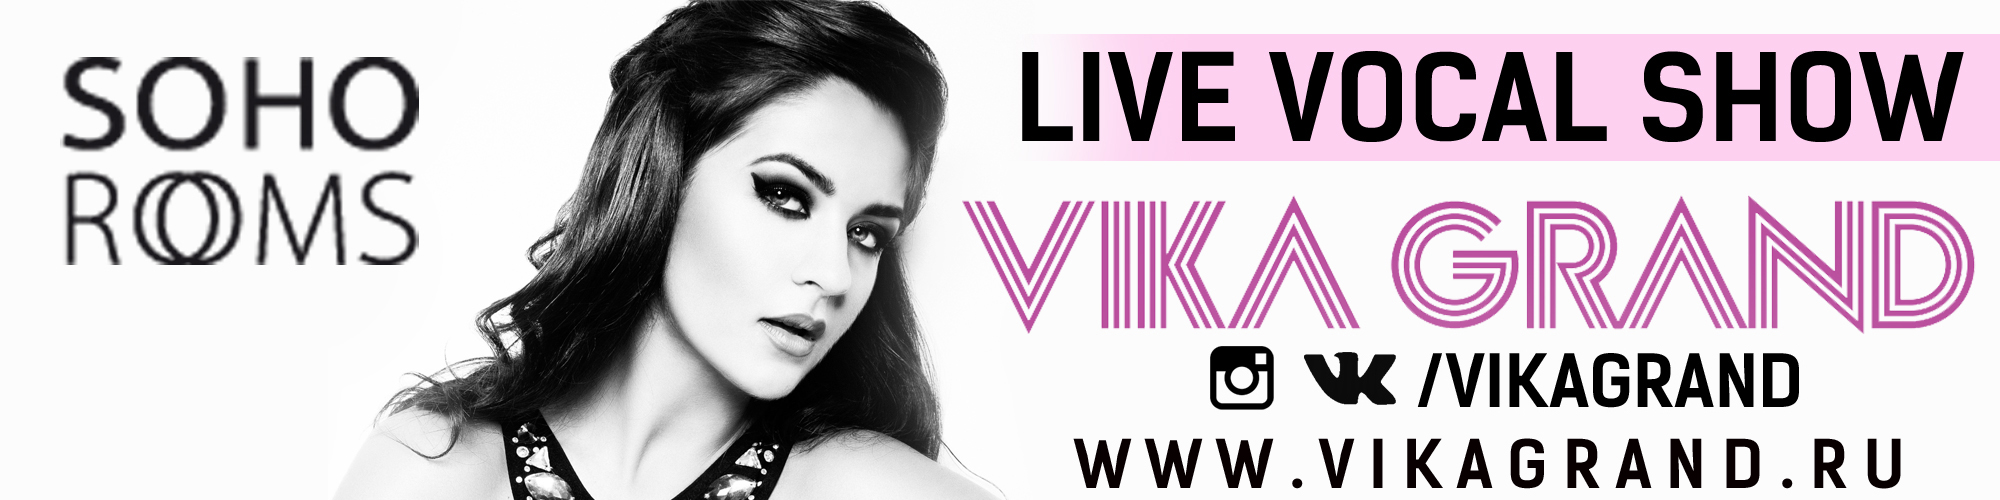 Vika grand live house vocal show for 90s vocal house